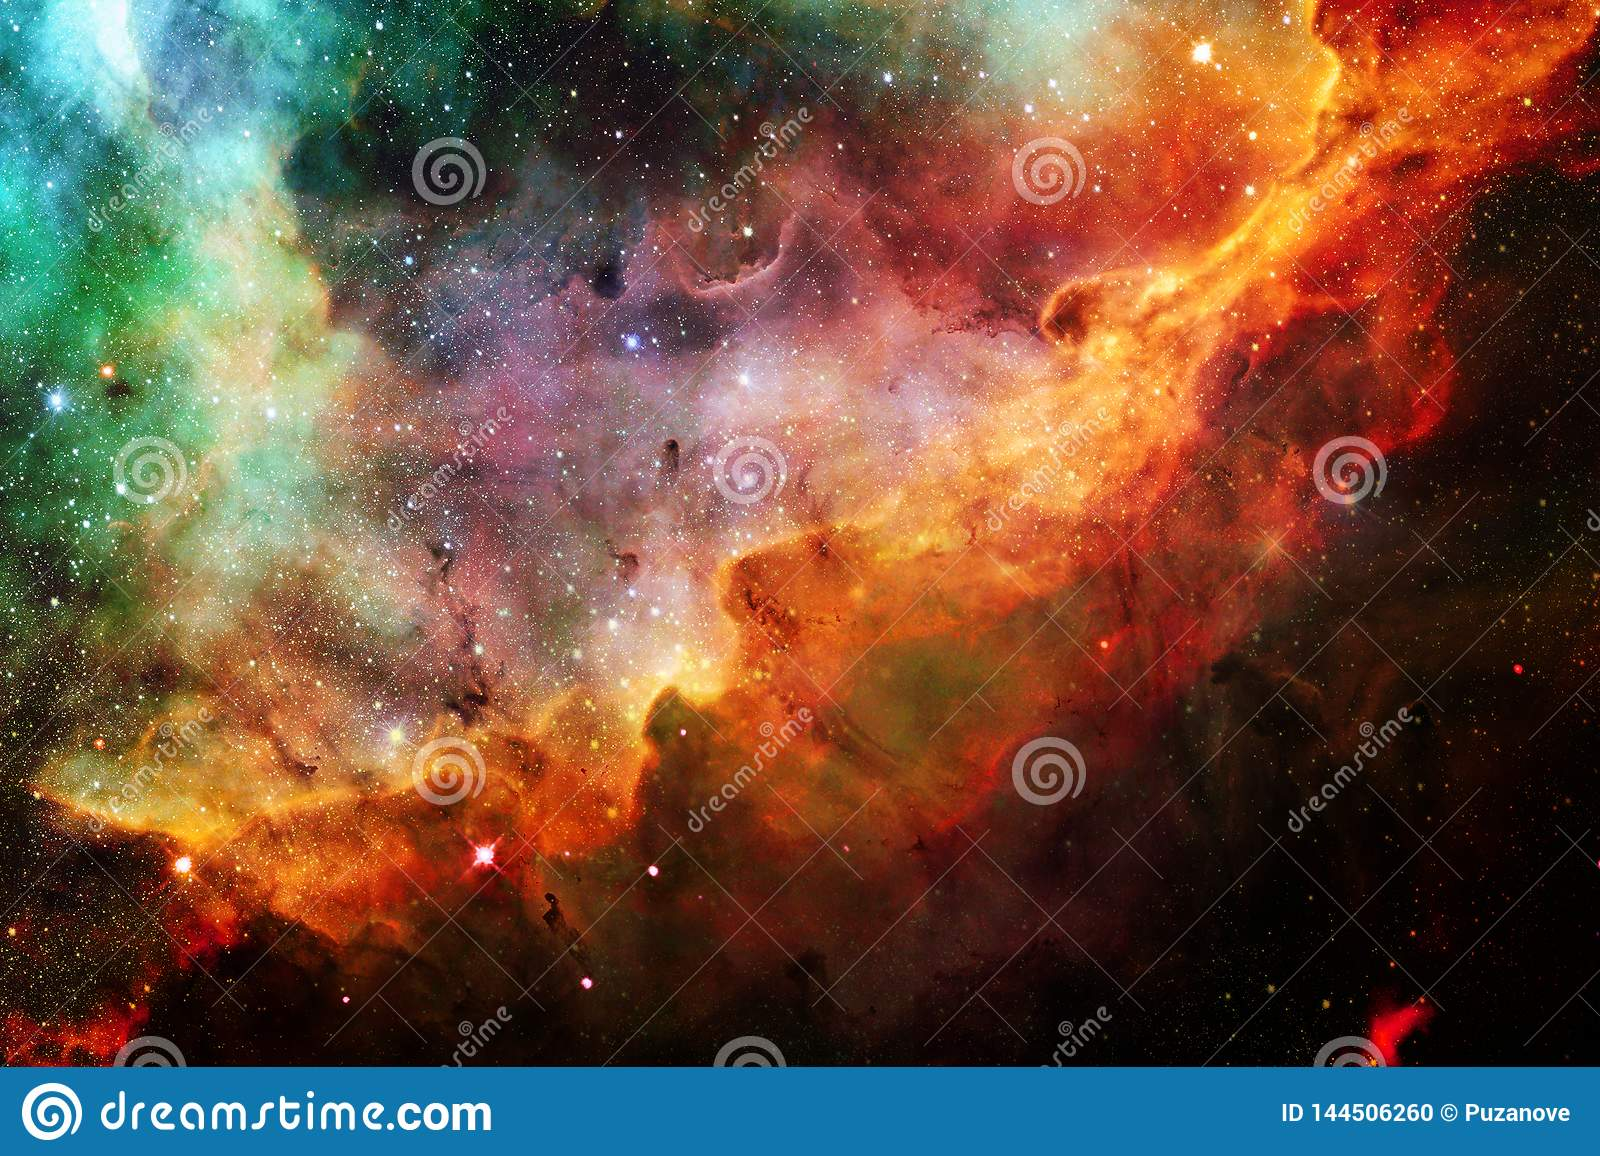 deep space science fiction fantasy high resolution ideal wallpaper elements image furnished nasa 144506260